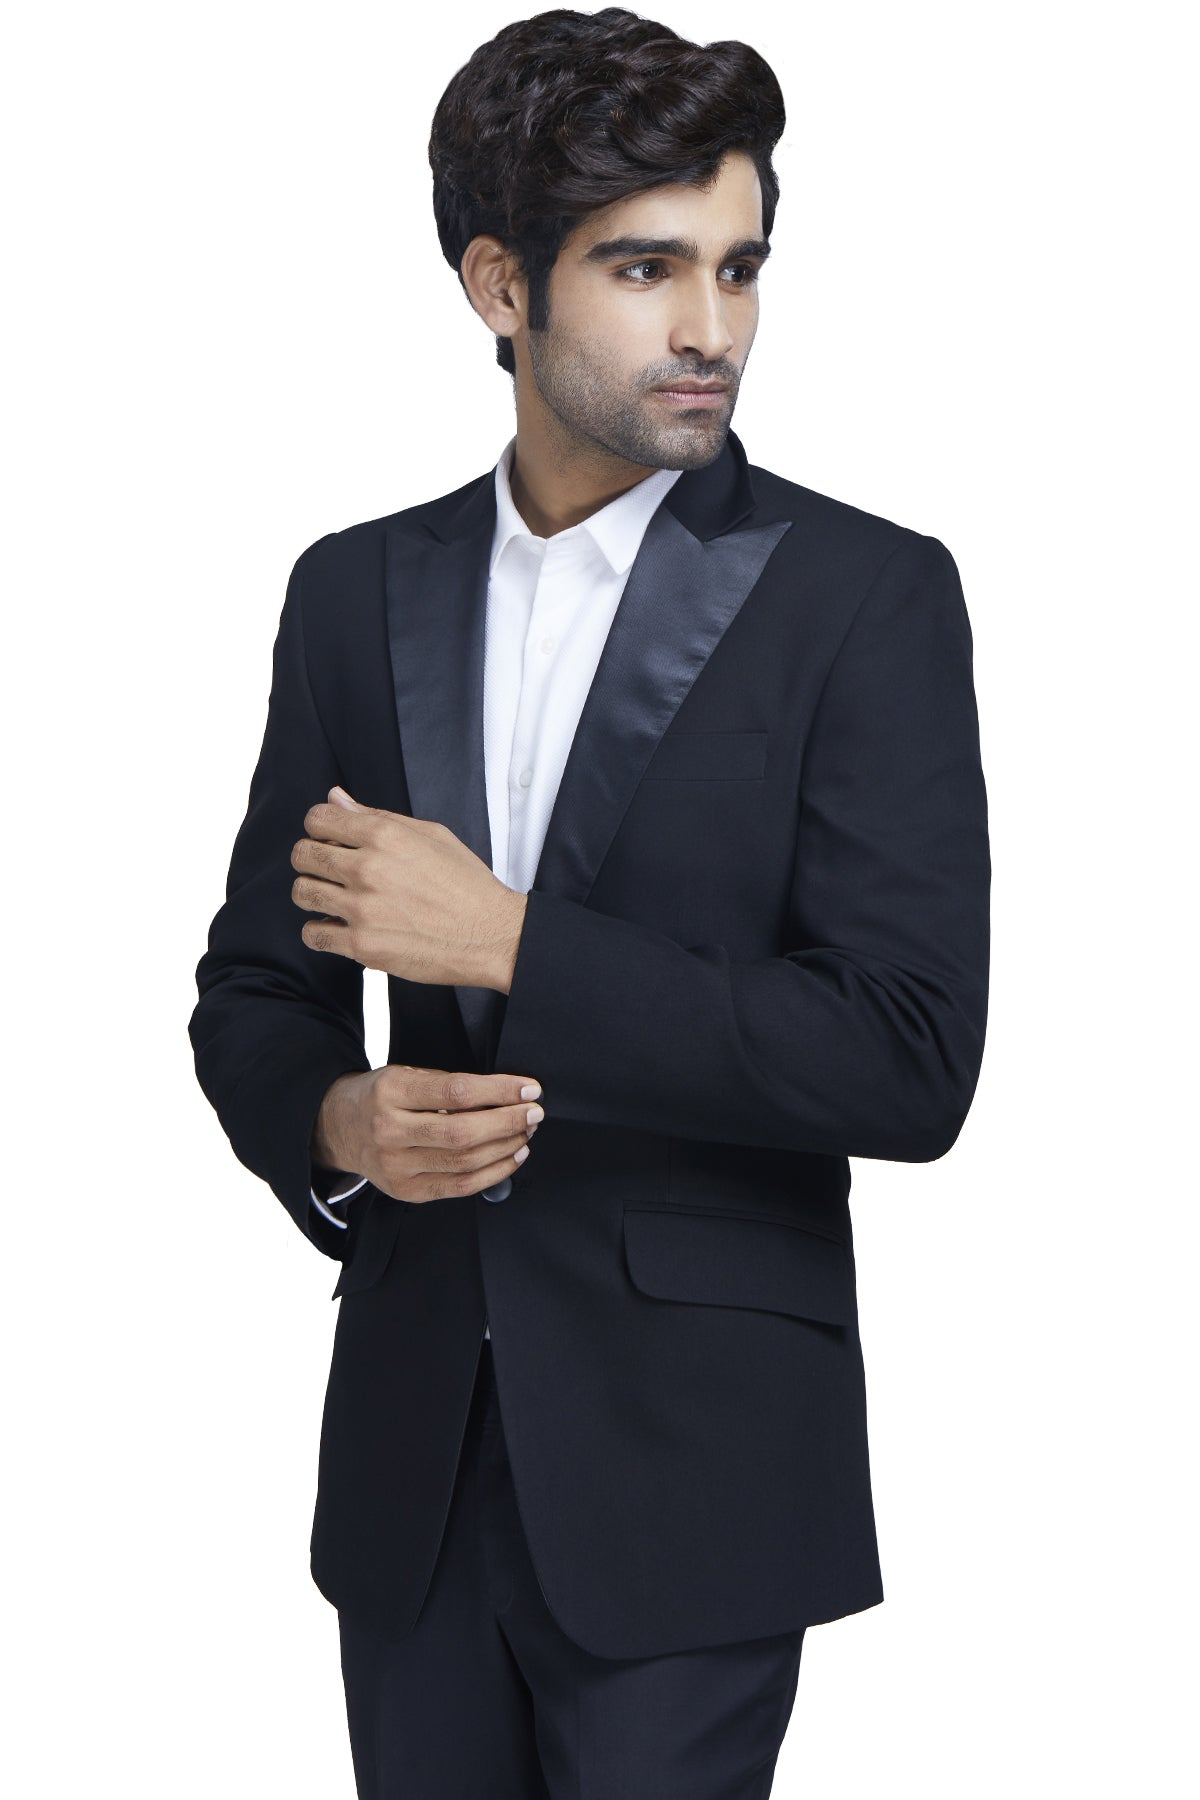 Suave as ever at the collar and smooth all across - this classic black dinner jacket has you covered for any special occasion in all it's dapper glory.